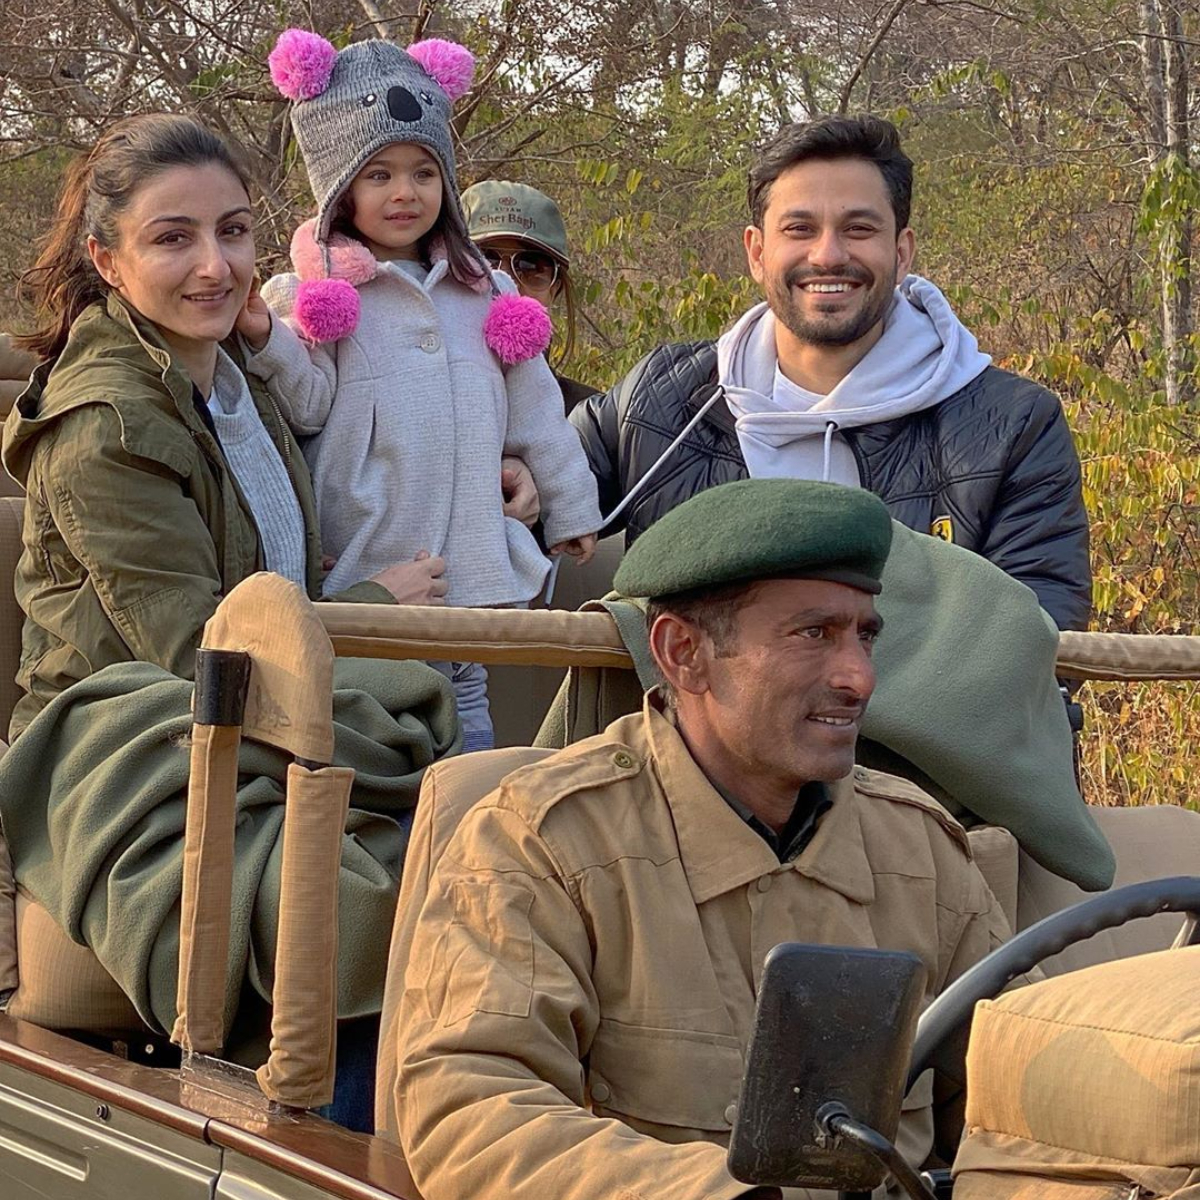 Inaaya Naumi Kemmu looks cute as a button in this family pic with Kunal Kemmu & Soha Ali Khan; Check it out